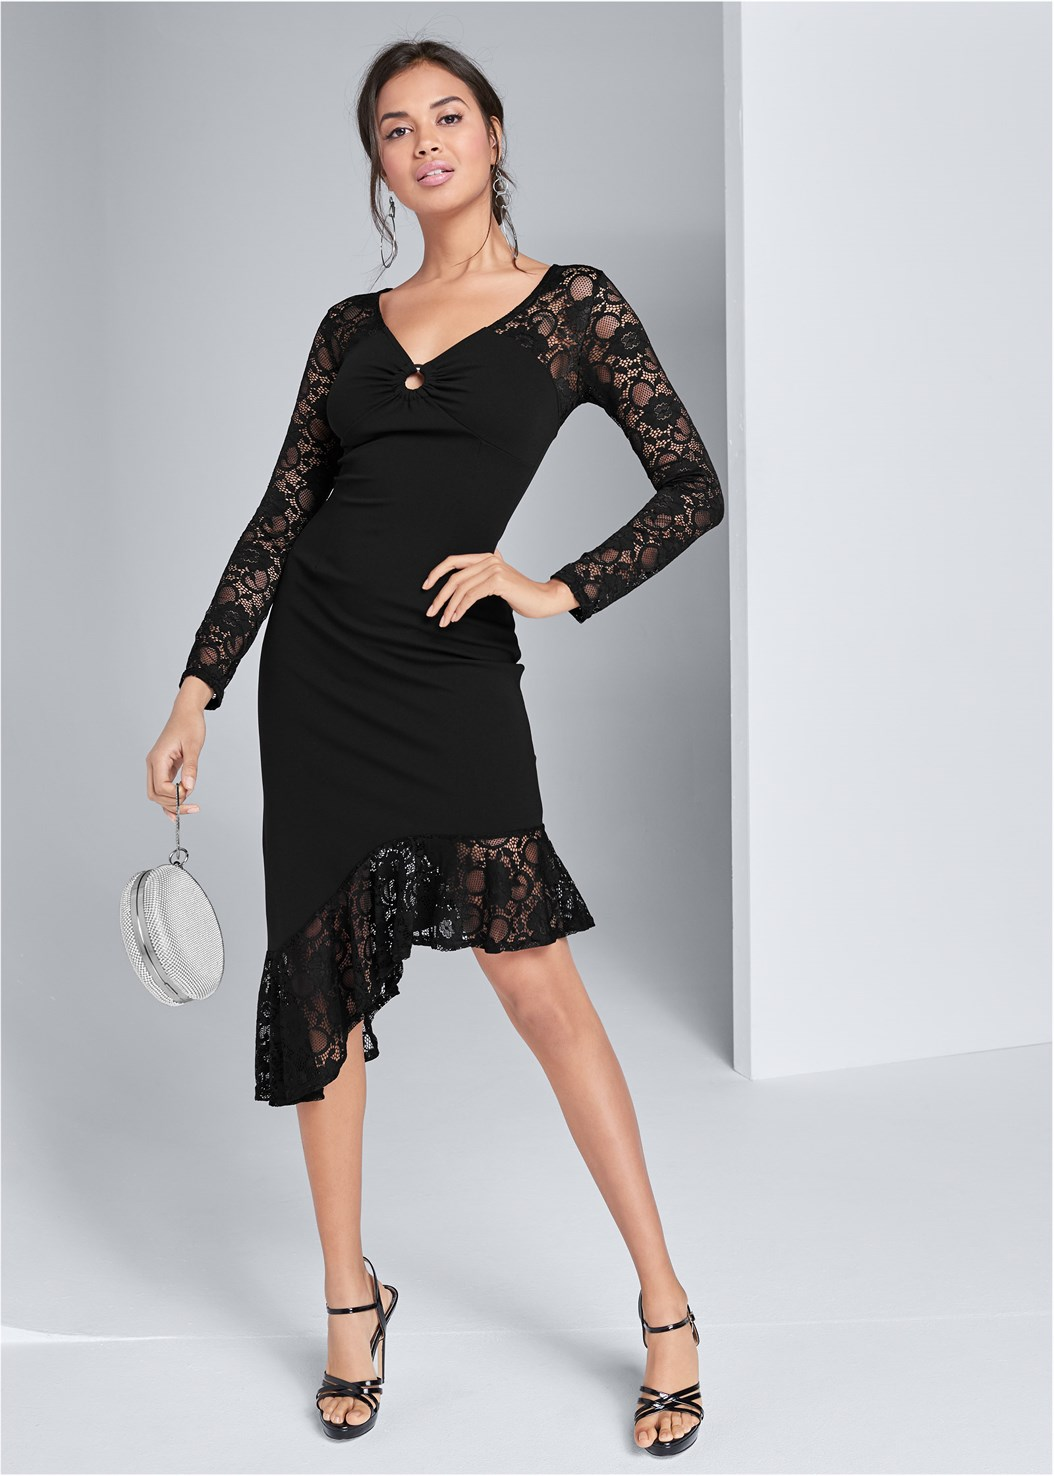 Asymmetrical Lace Dress,Crisscross Strappy Heel,Ring Handle Circle Clutch